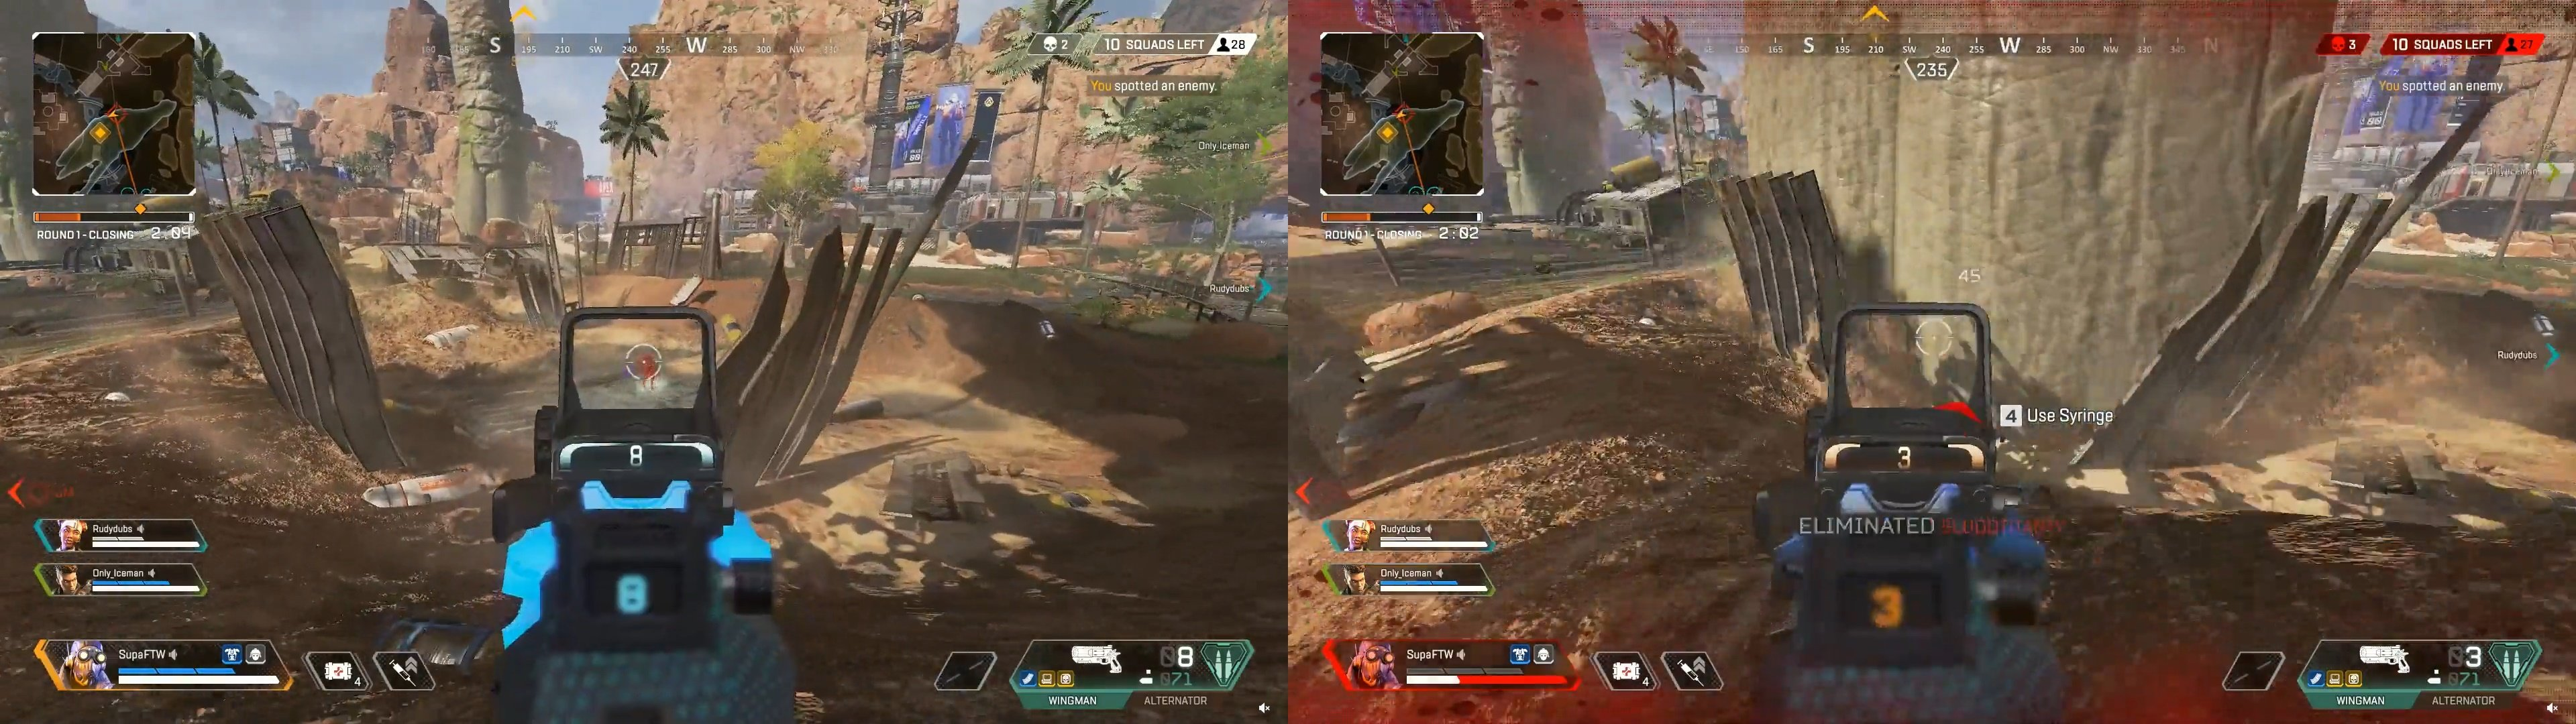 Players are getting crushed to death by leviathan monster in Apex Legends